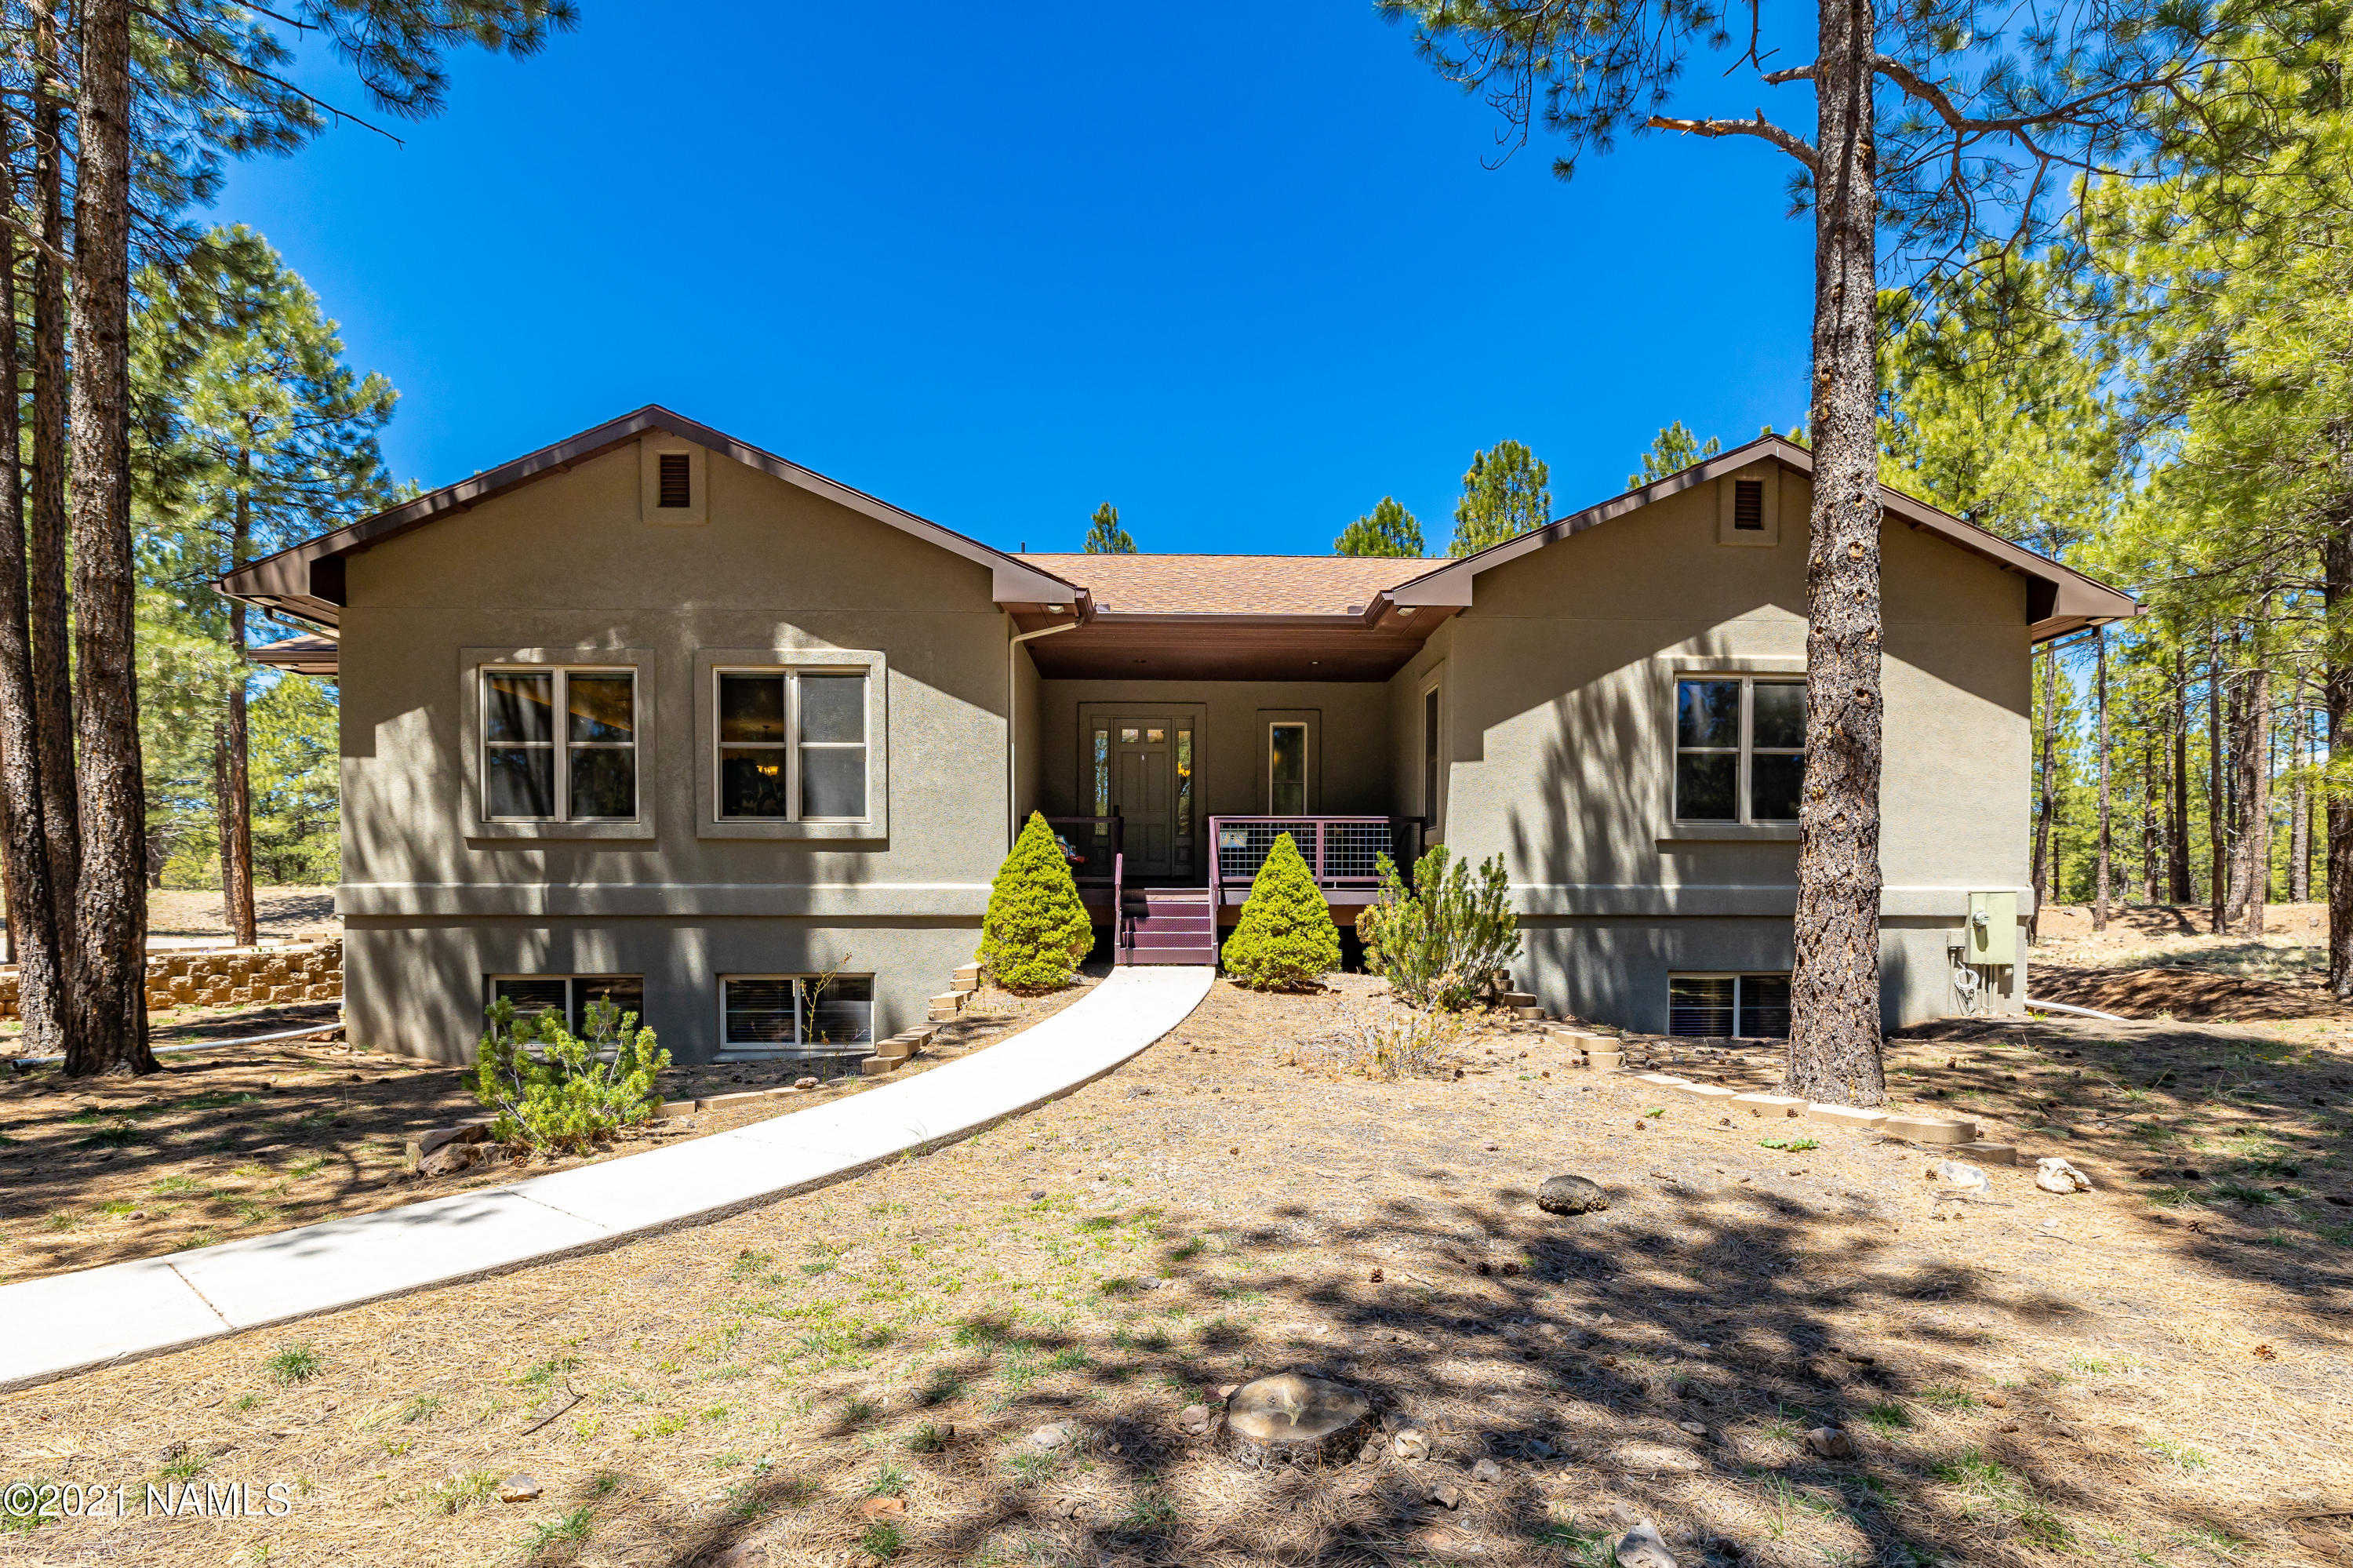 $1,625,000 - 7Br/5Ba -  for Sale in Flagstaff